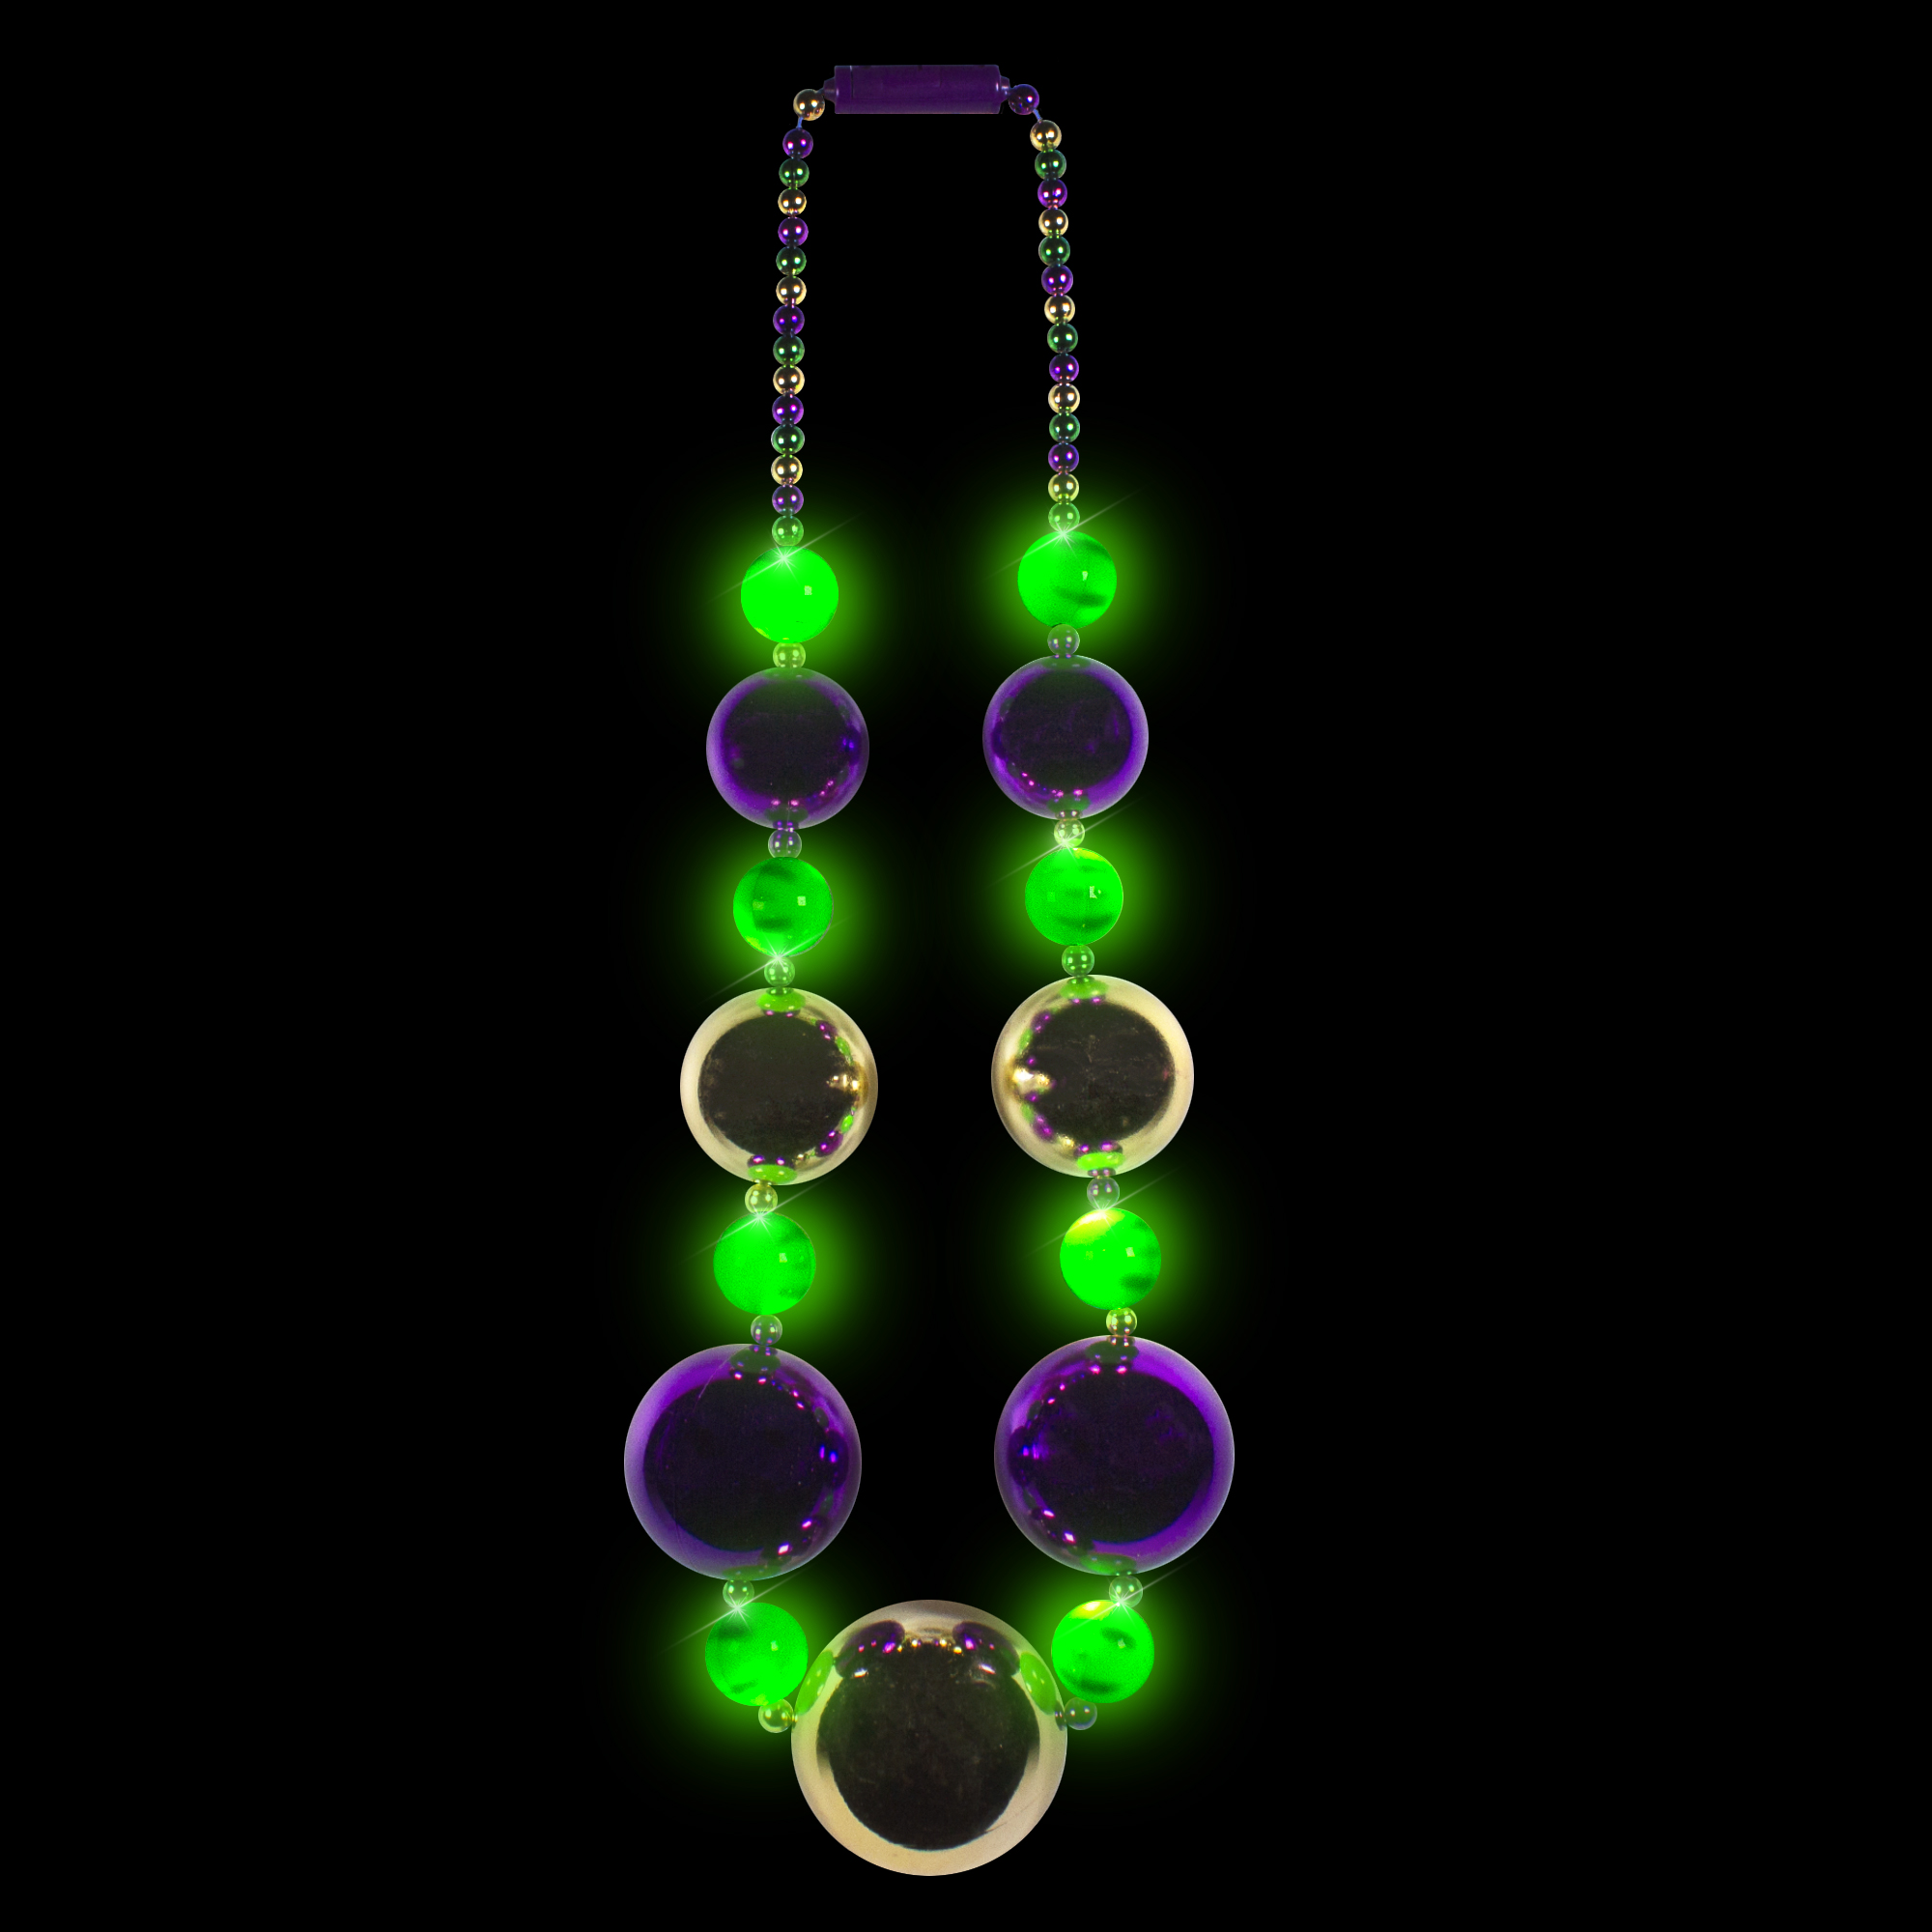 JUMBO 8 LED MARDI GRAS BALL BEADS NECKLACE